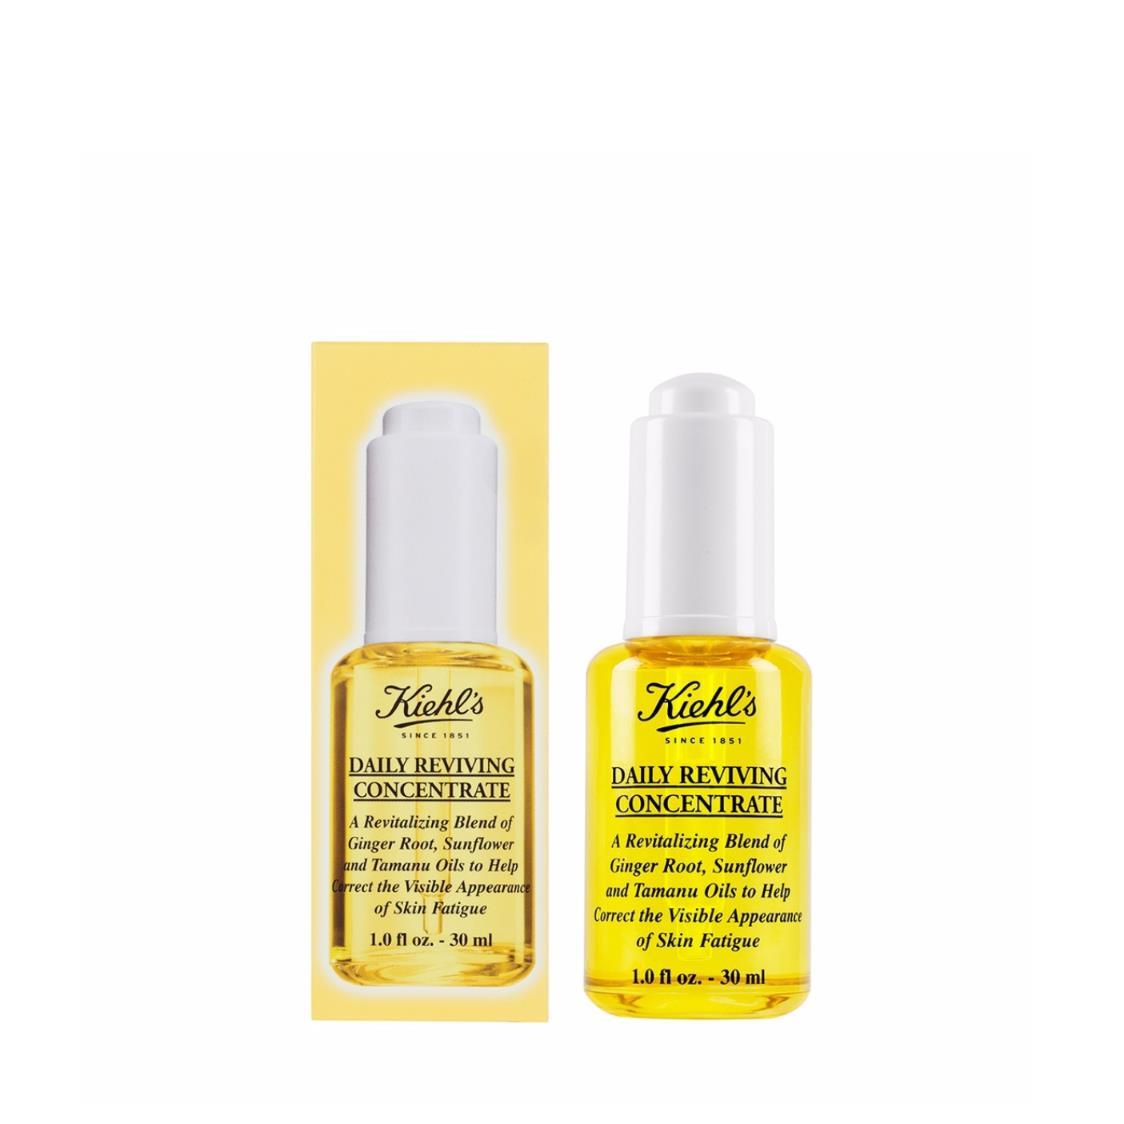 Kiehls Since 1851 Daily Reviving Concentrate 30ml